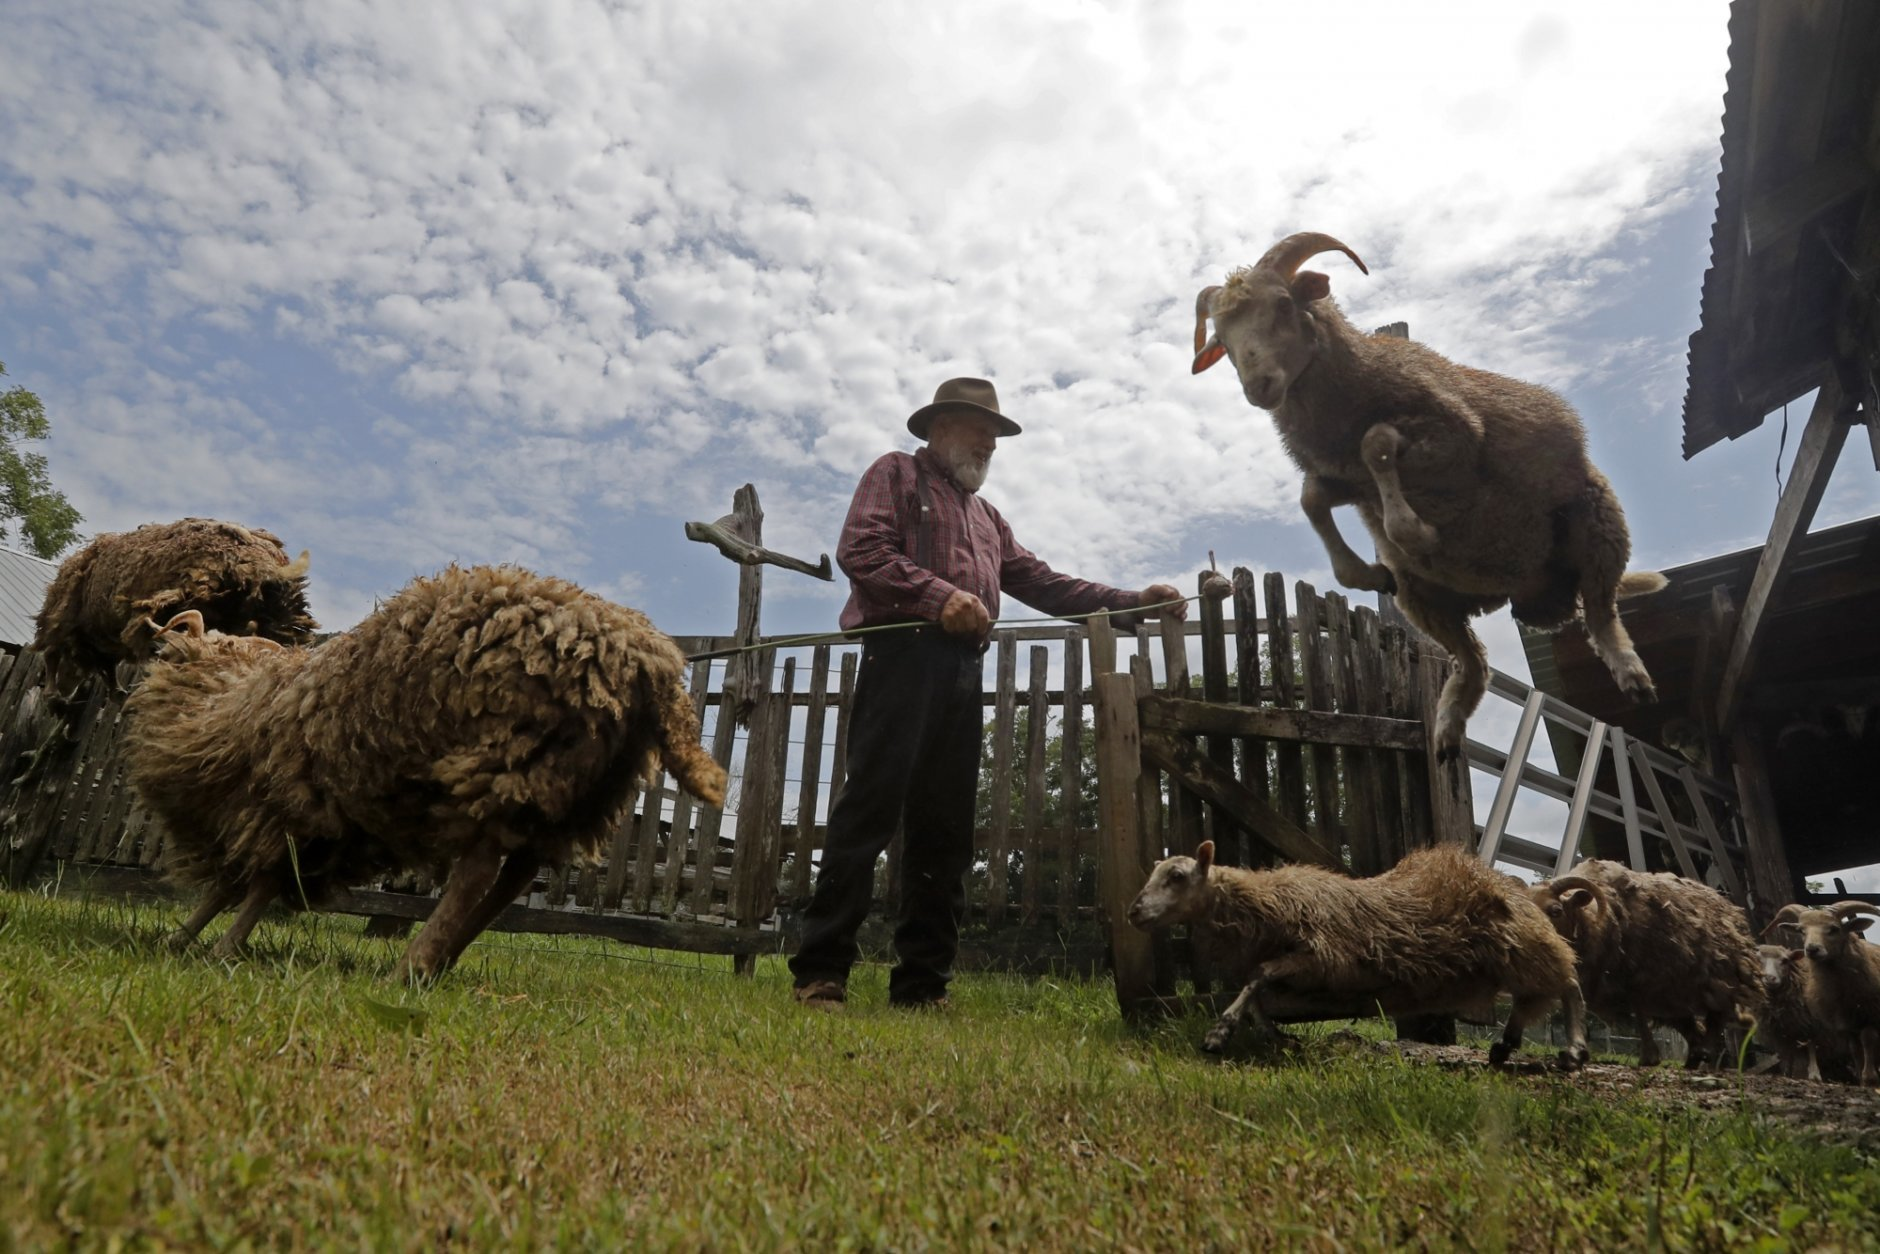 In this July 17, 2018, photo, heritage sheep, descendants of Spanish colonial sheep, leap from their pen on Brown's farm in Poplarville, Miss. Dr. Phillip Sponenberg of the Virginia-Maryland College of Veterinary Medicine says the horses, cattle, and sheep owned by Brown are all descended from animals brought to the United States since the 1500s by Spanish explorers and colonists. (AP Photo/Gerald Herbert)